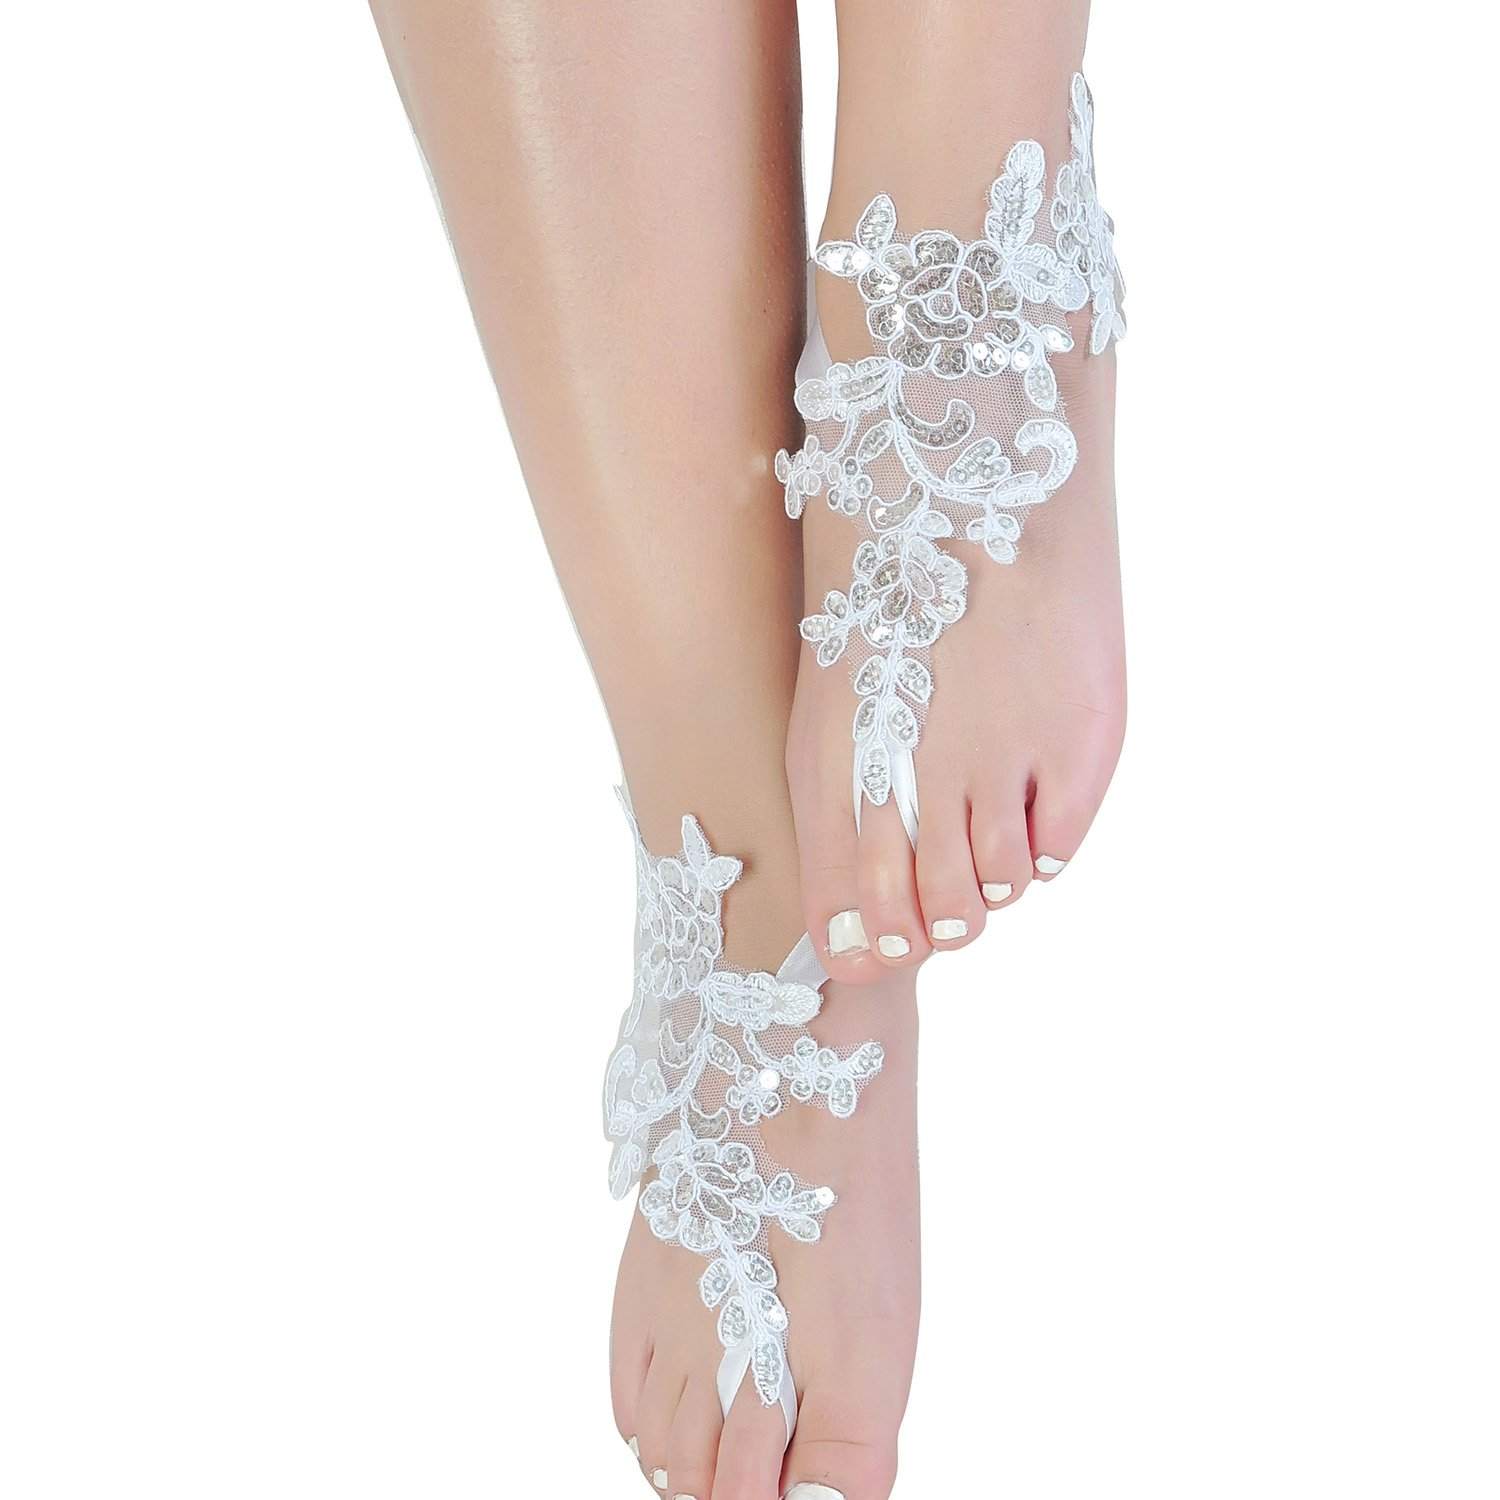 Fine Lady Embroidered Lace Barefoot Sandals Bridesmaid Anklet Gift Bellydance Steampunk Beach Pool Party Accessory